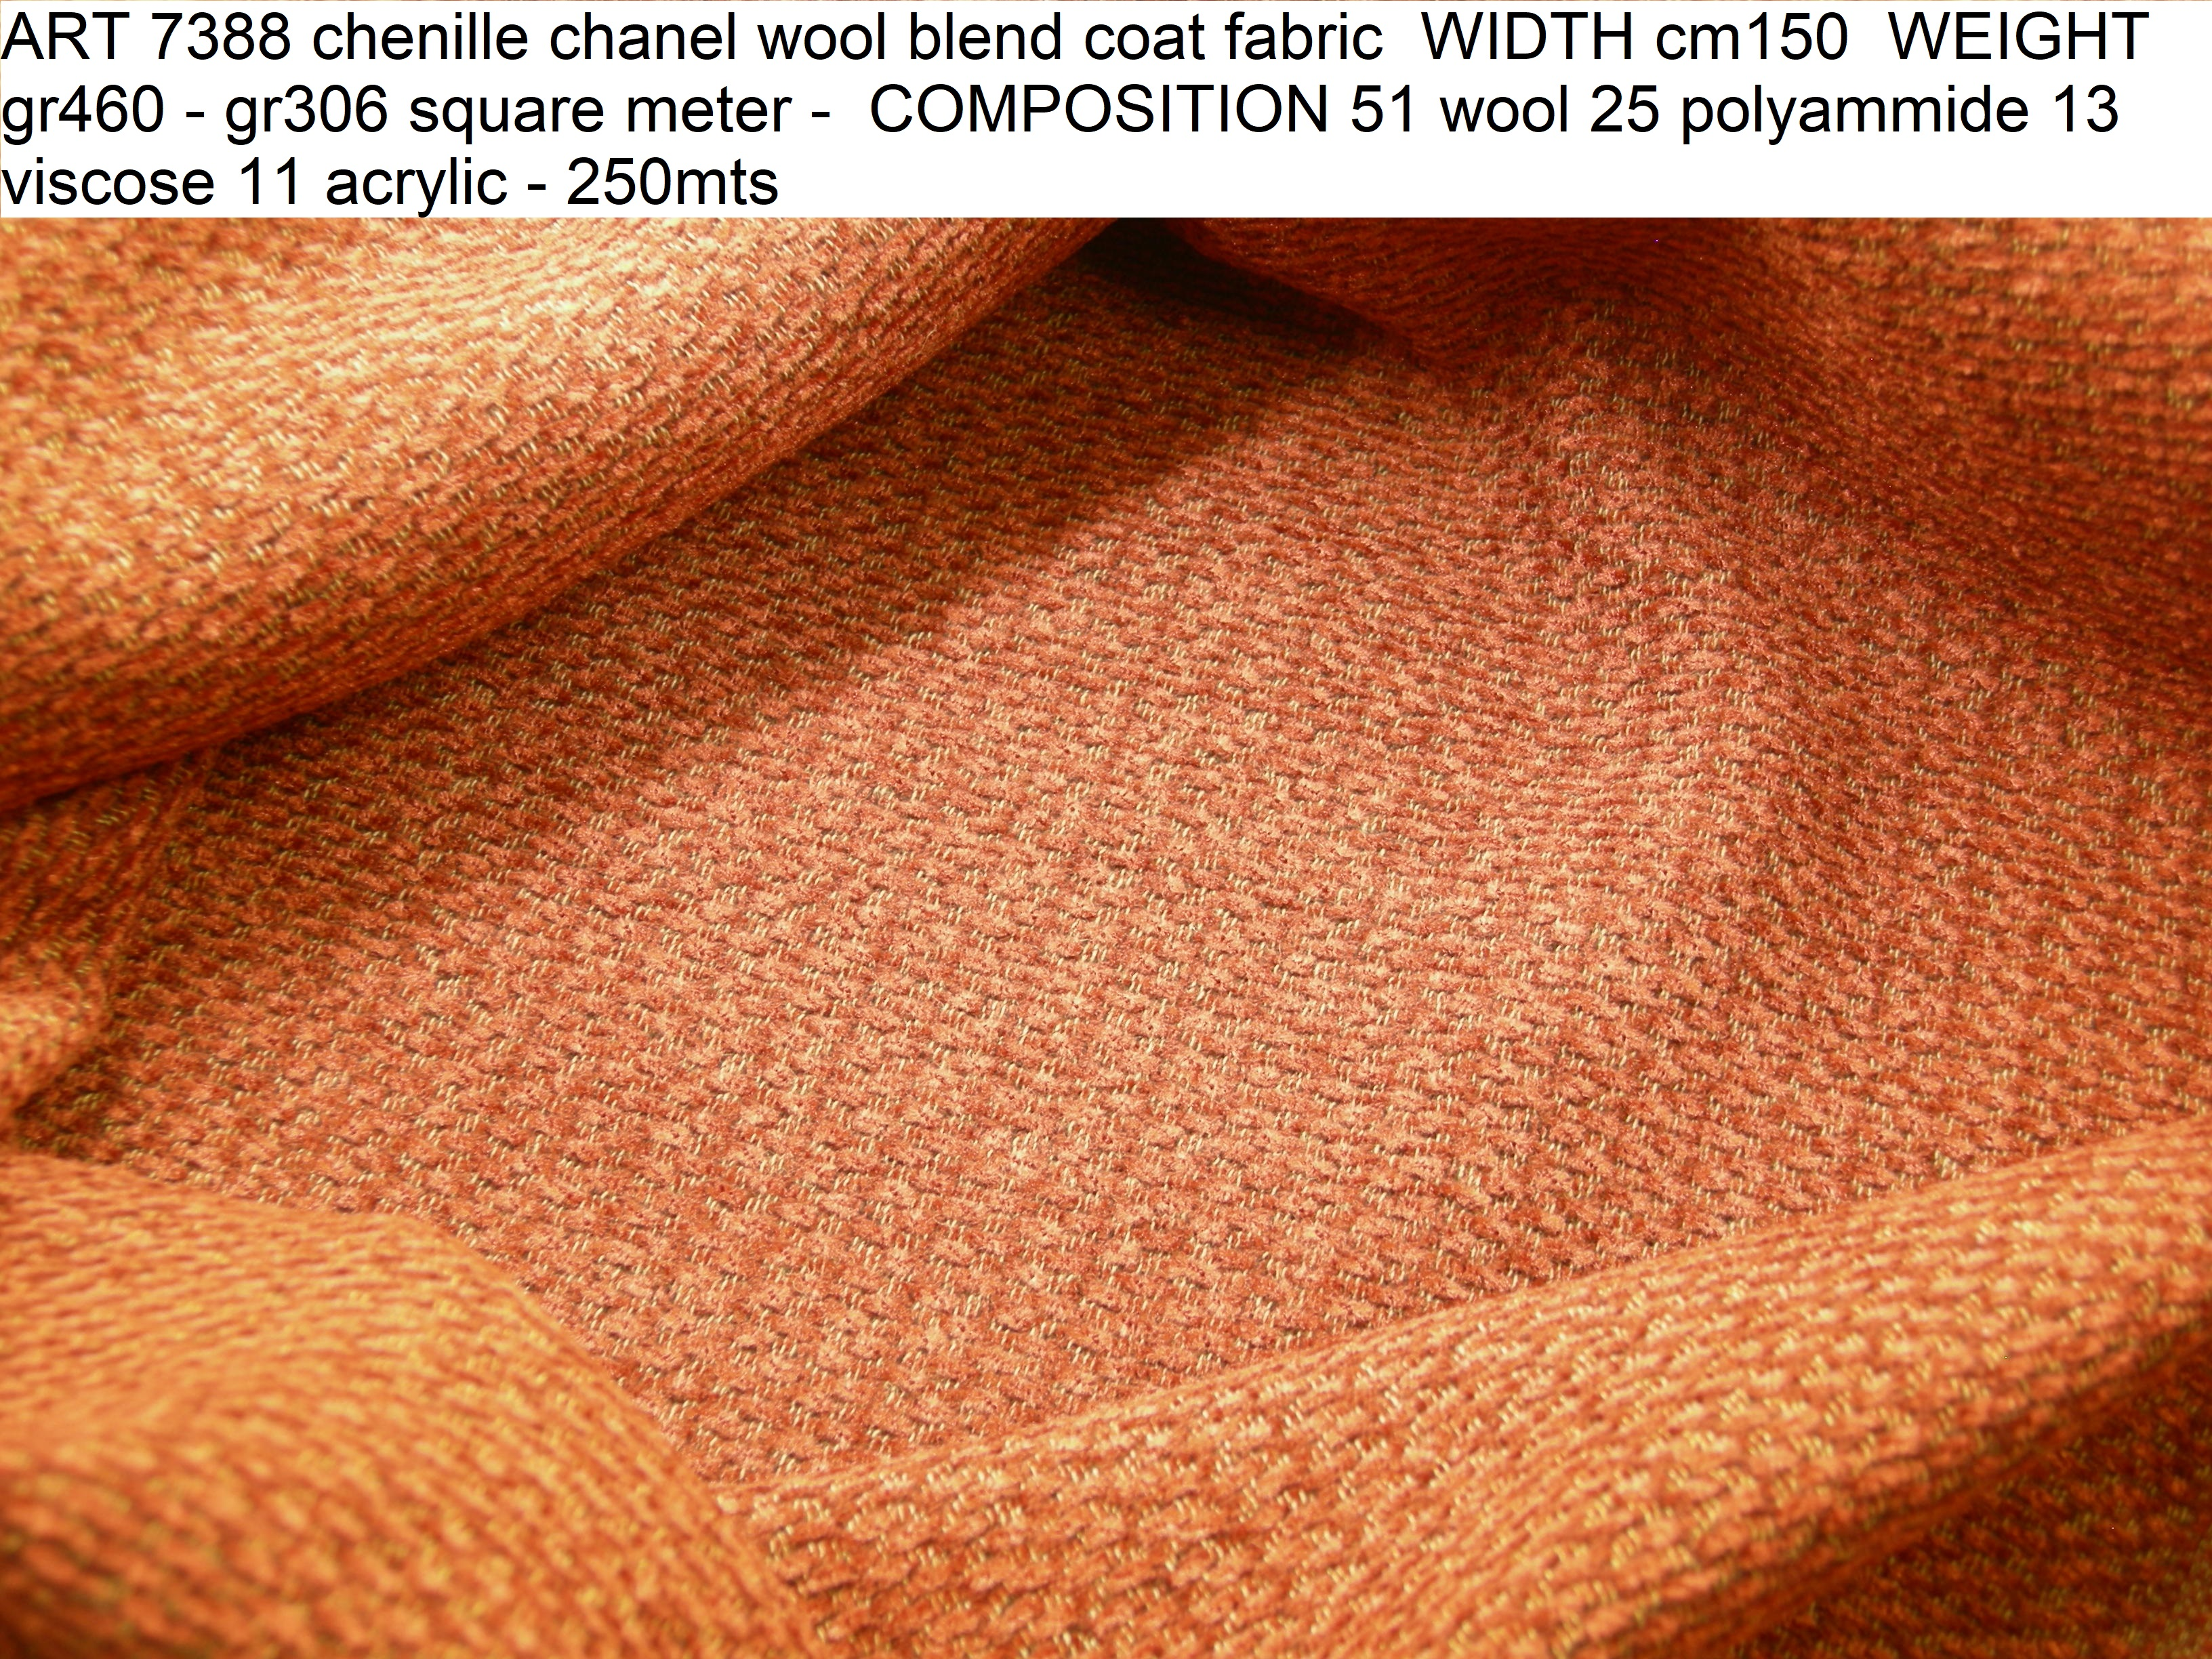 ART 7388 chenille chanel wool blend coat fabric WIDTH cm150 WEIGHT gr460 - gr306 square meter - COMPOSITION 51 wool 25 polyammide 13 viscose 11 acrylic - 250mts